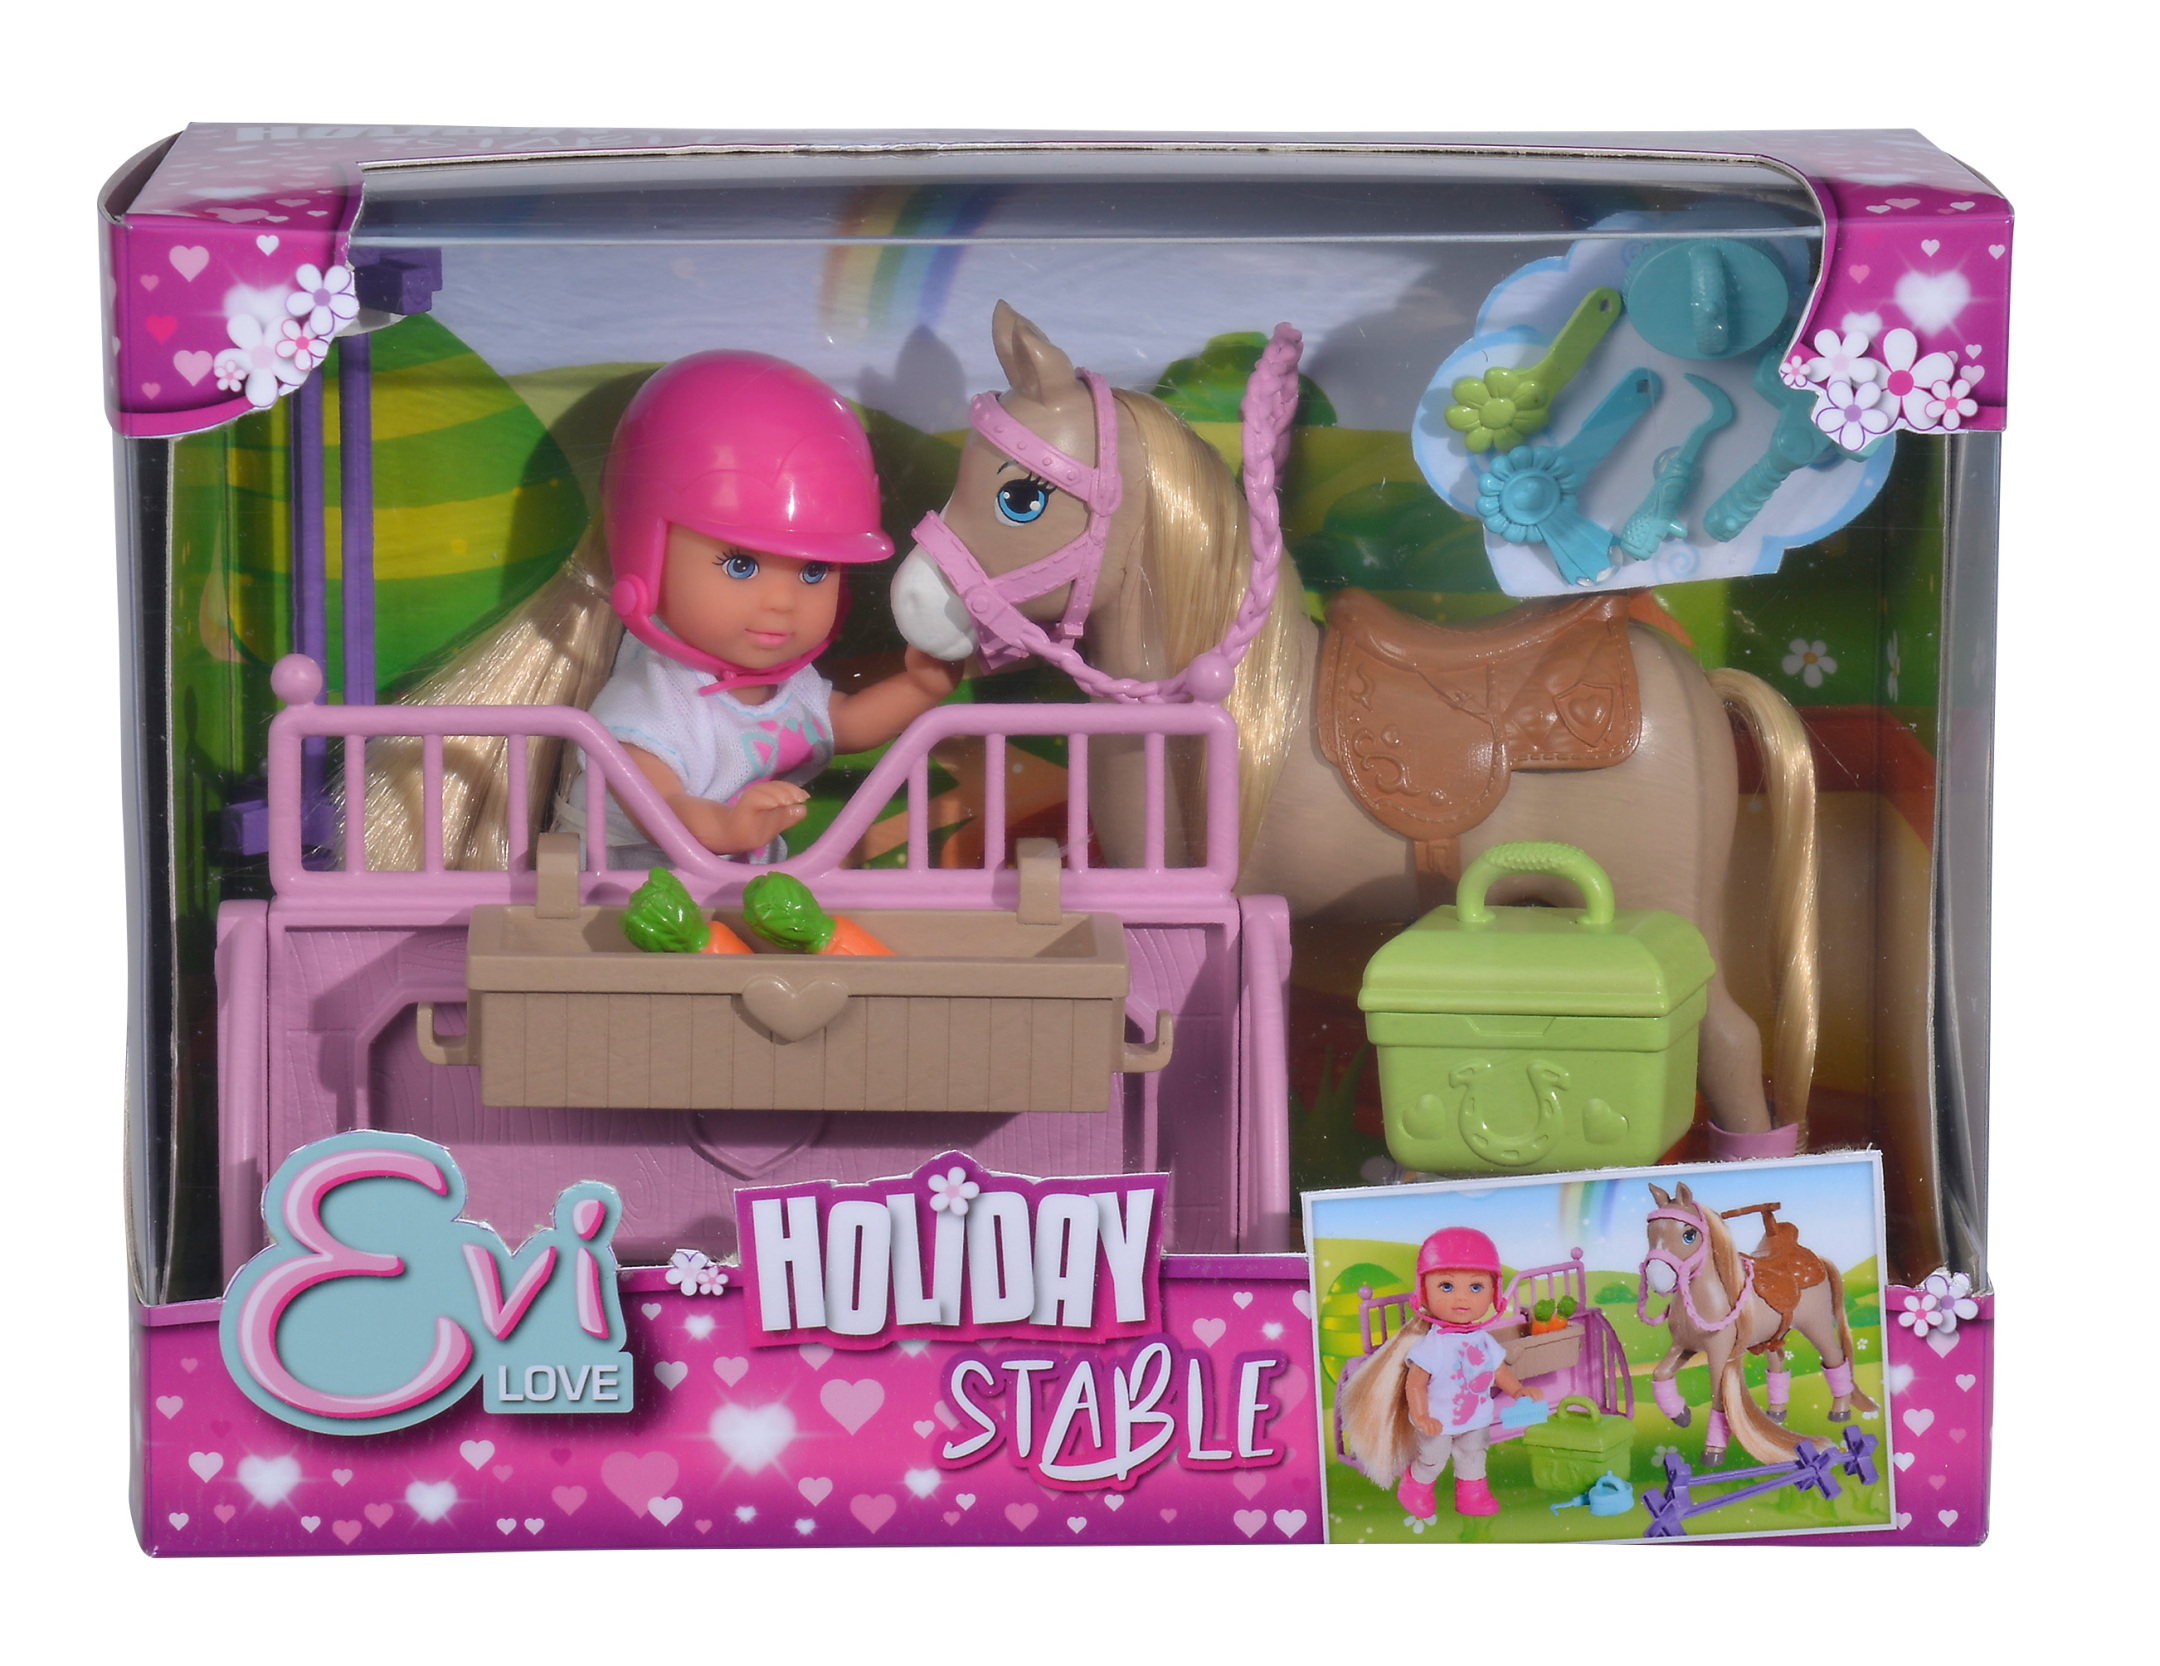 Evi Love Holiday Horse